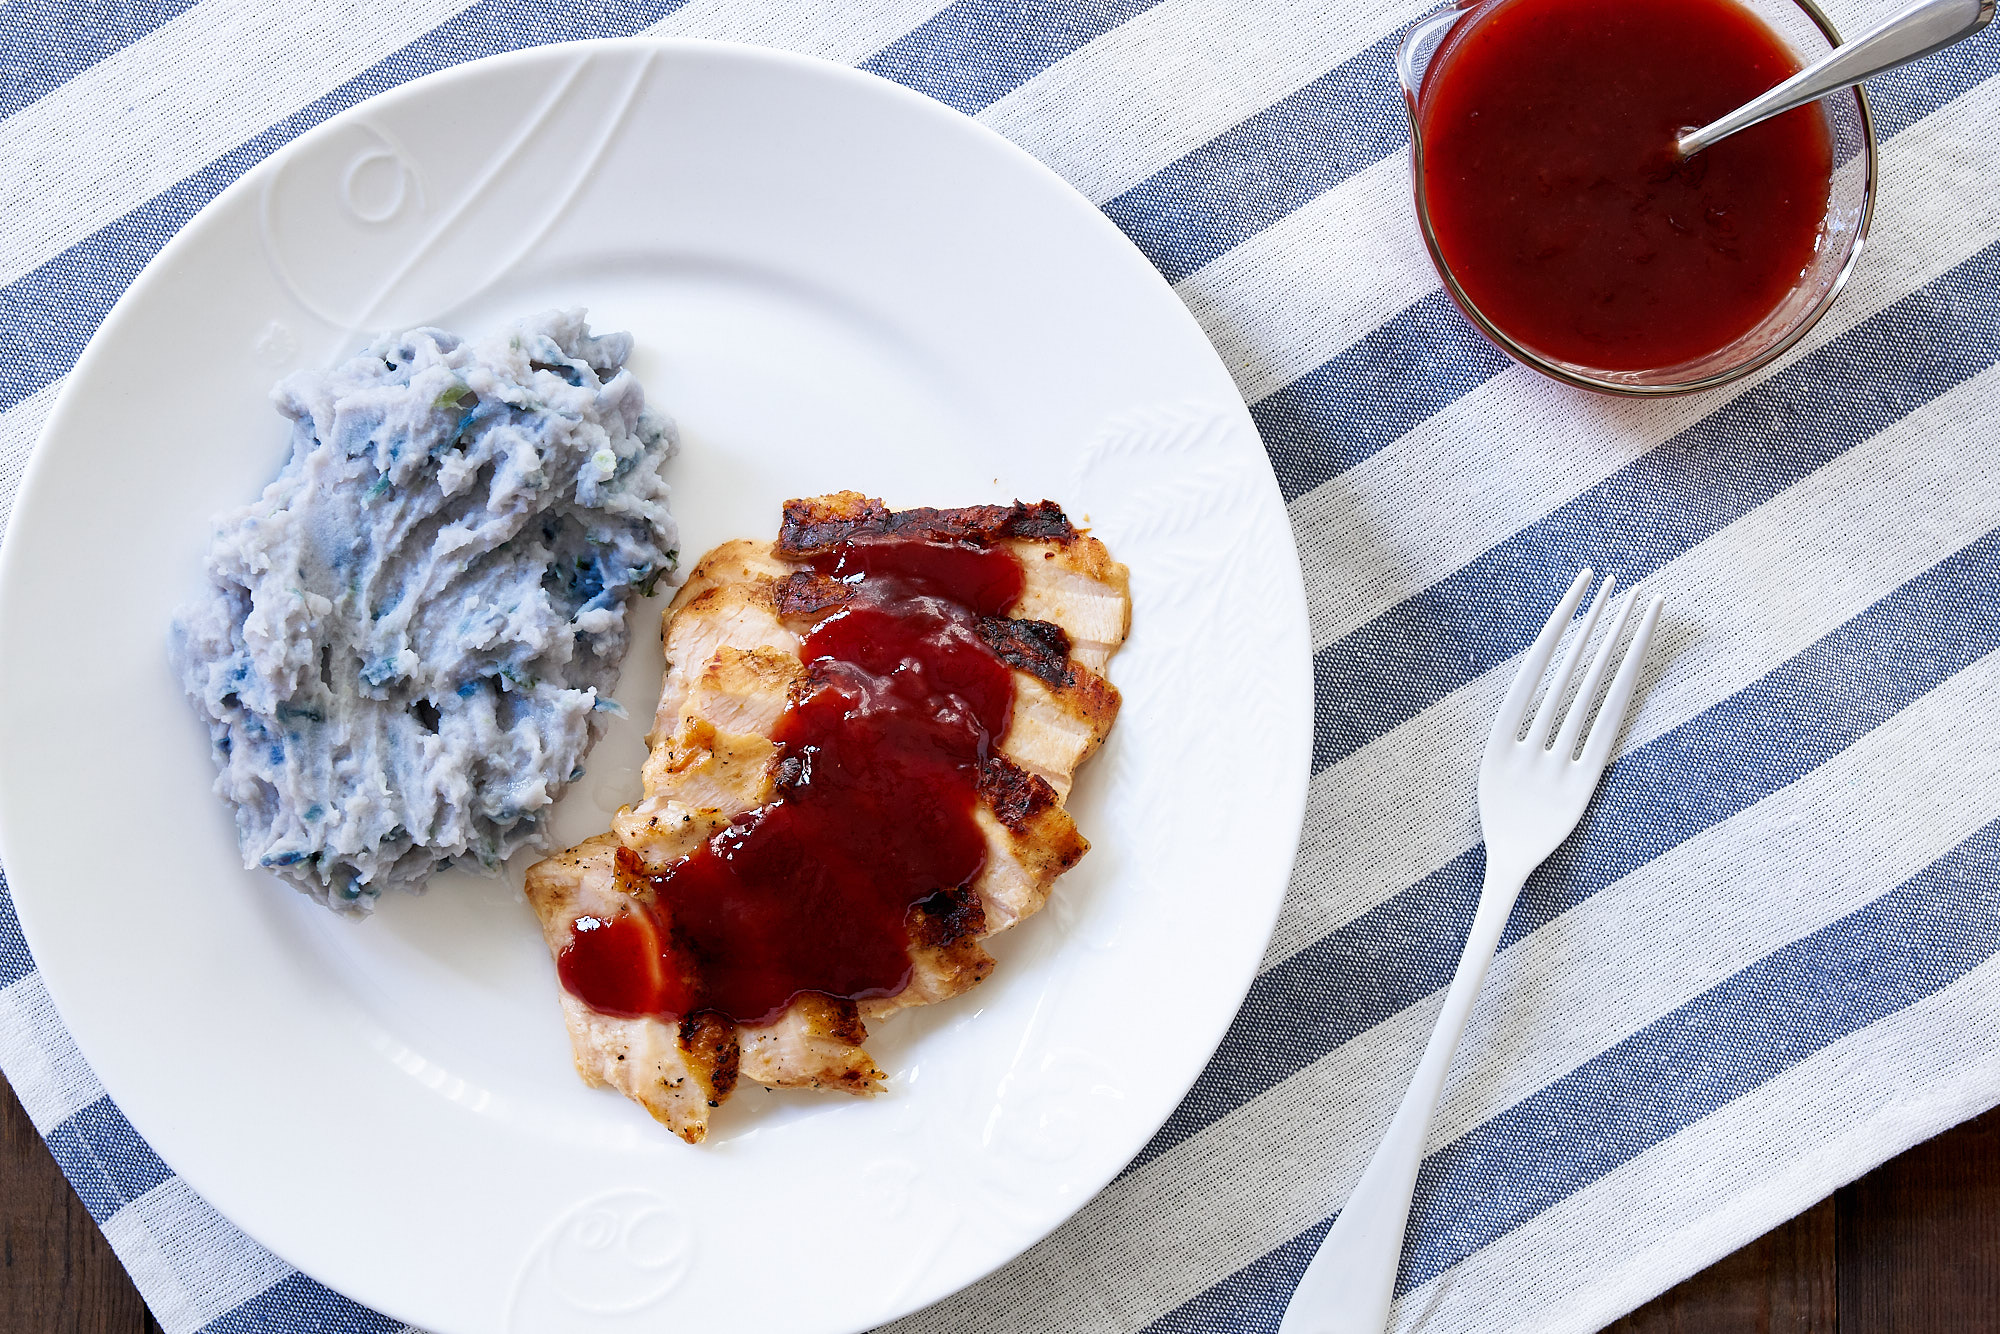 Sweeten Your Patriotic Meal with Strawberry Barbecue Sauce